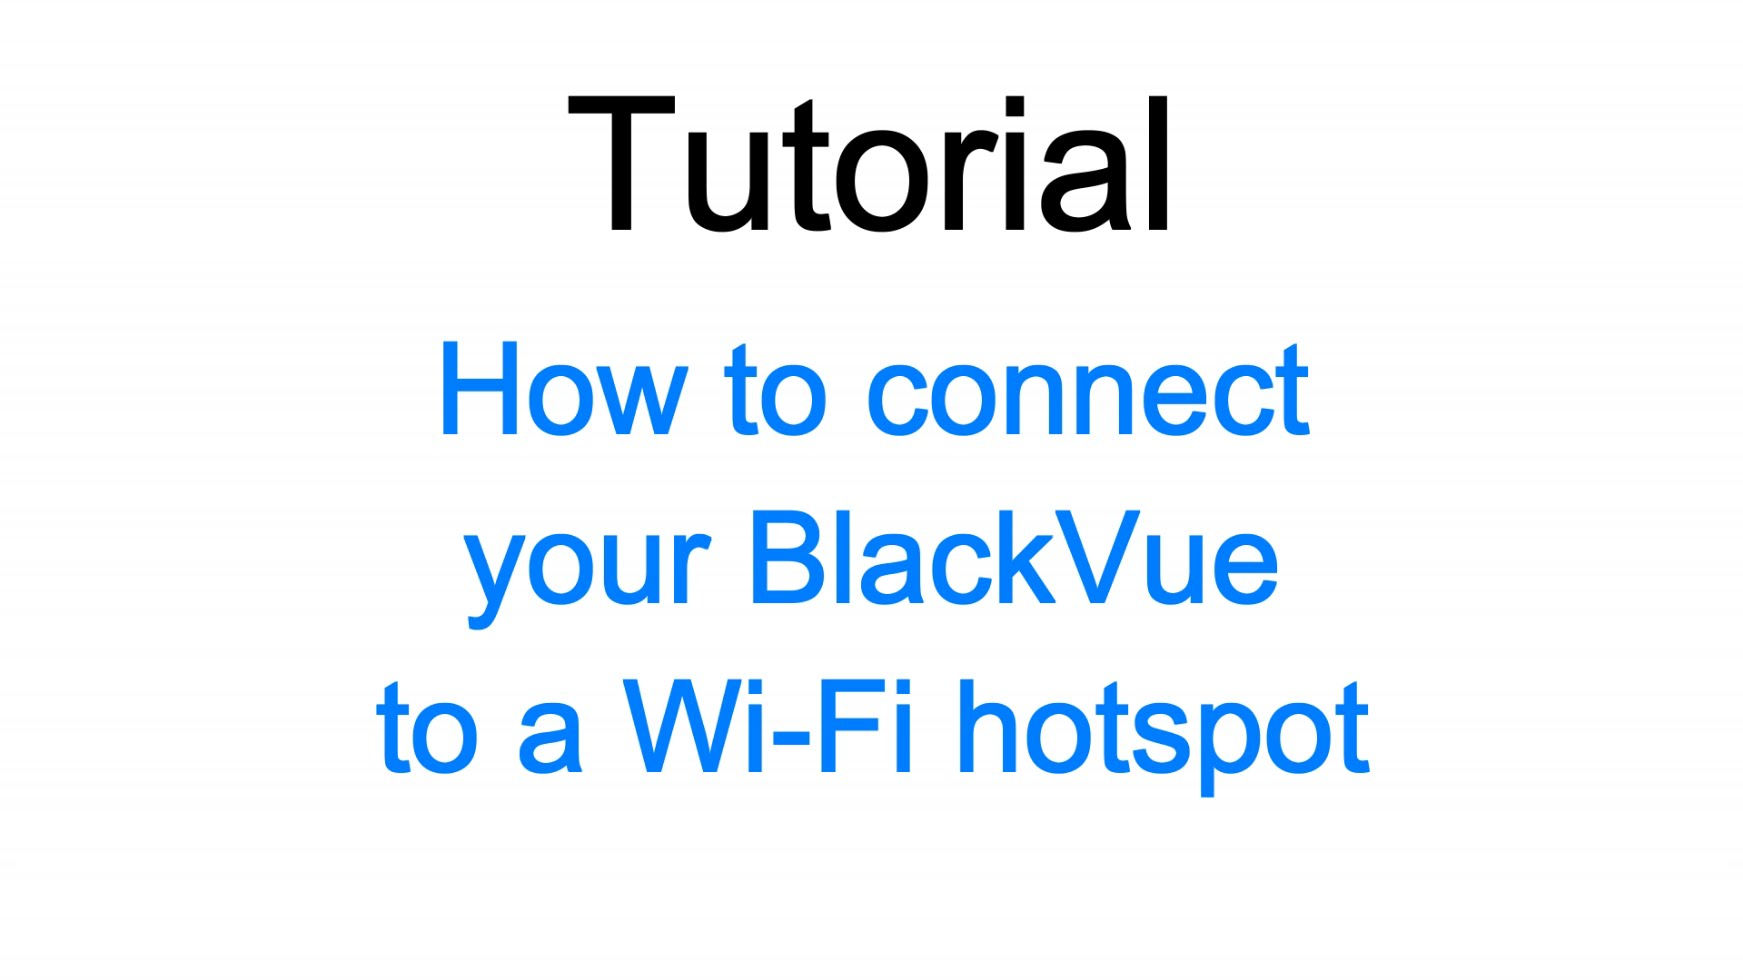 Connect your BlackVue to a Wi-Fi hotspot for Cloud connectivity!